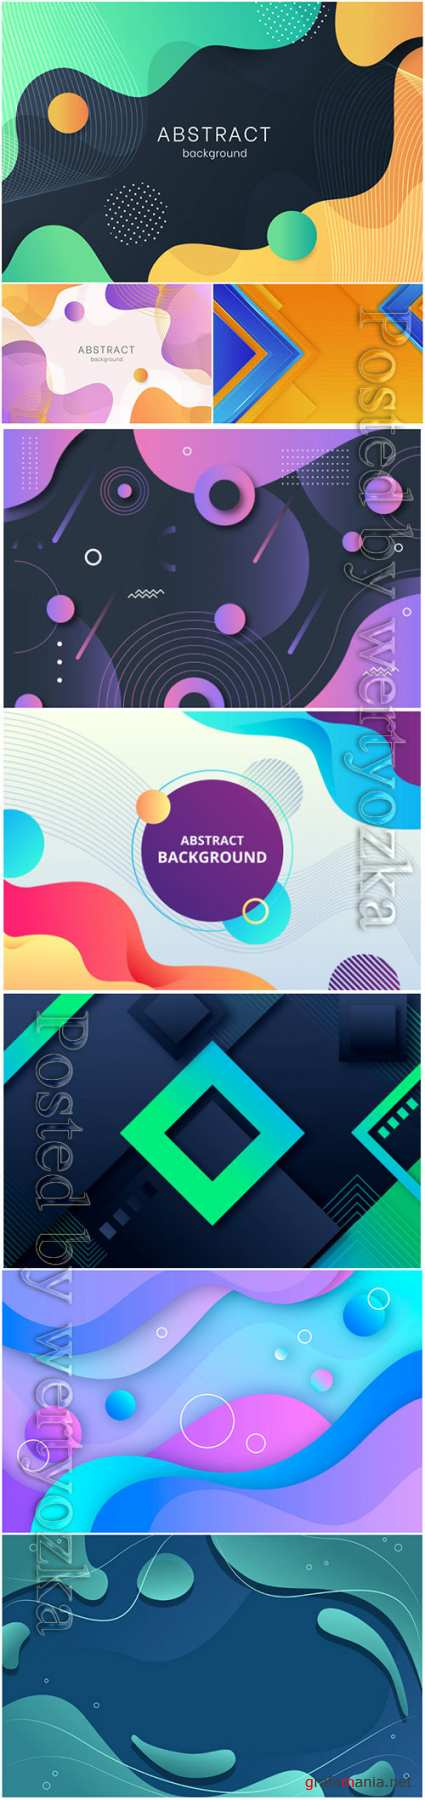 Luxury abstract backgrounds in vector # 3